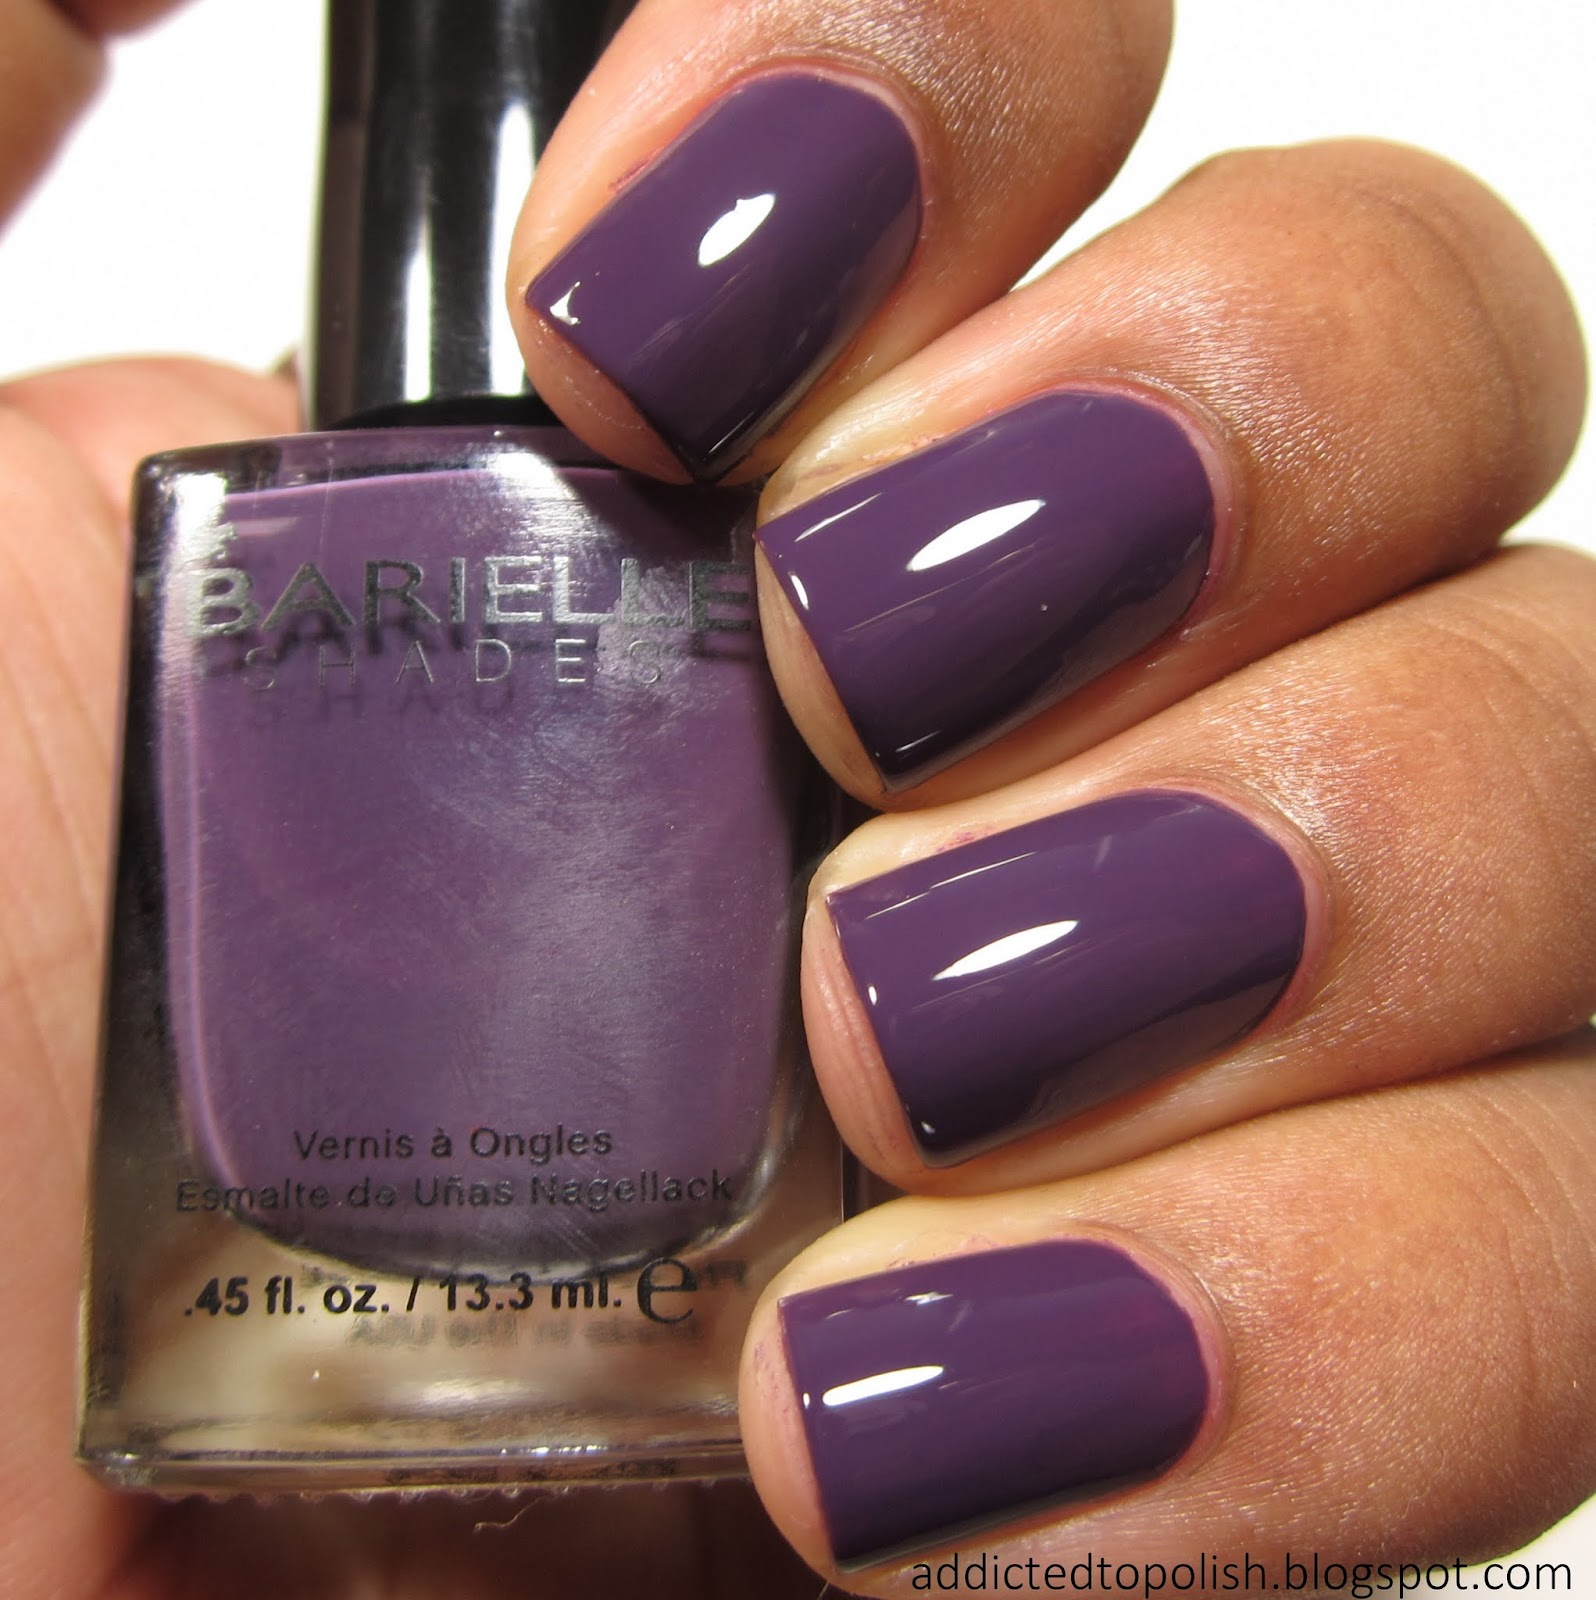 barielle-soho-at-night-purple-nail-polish